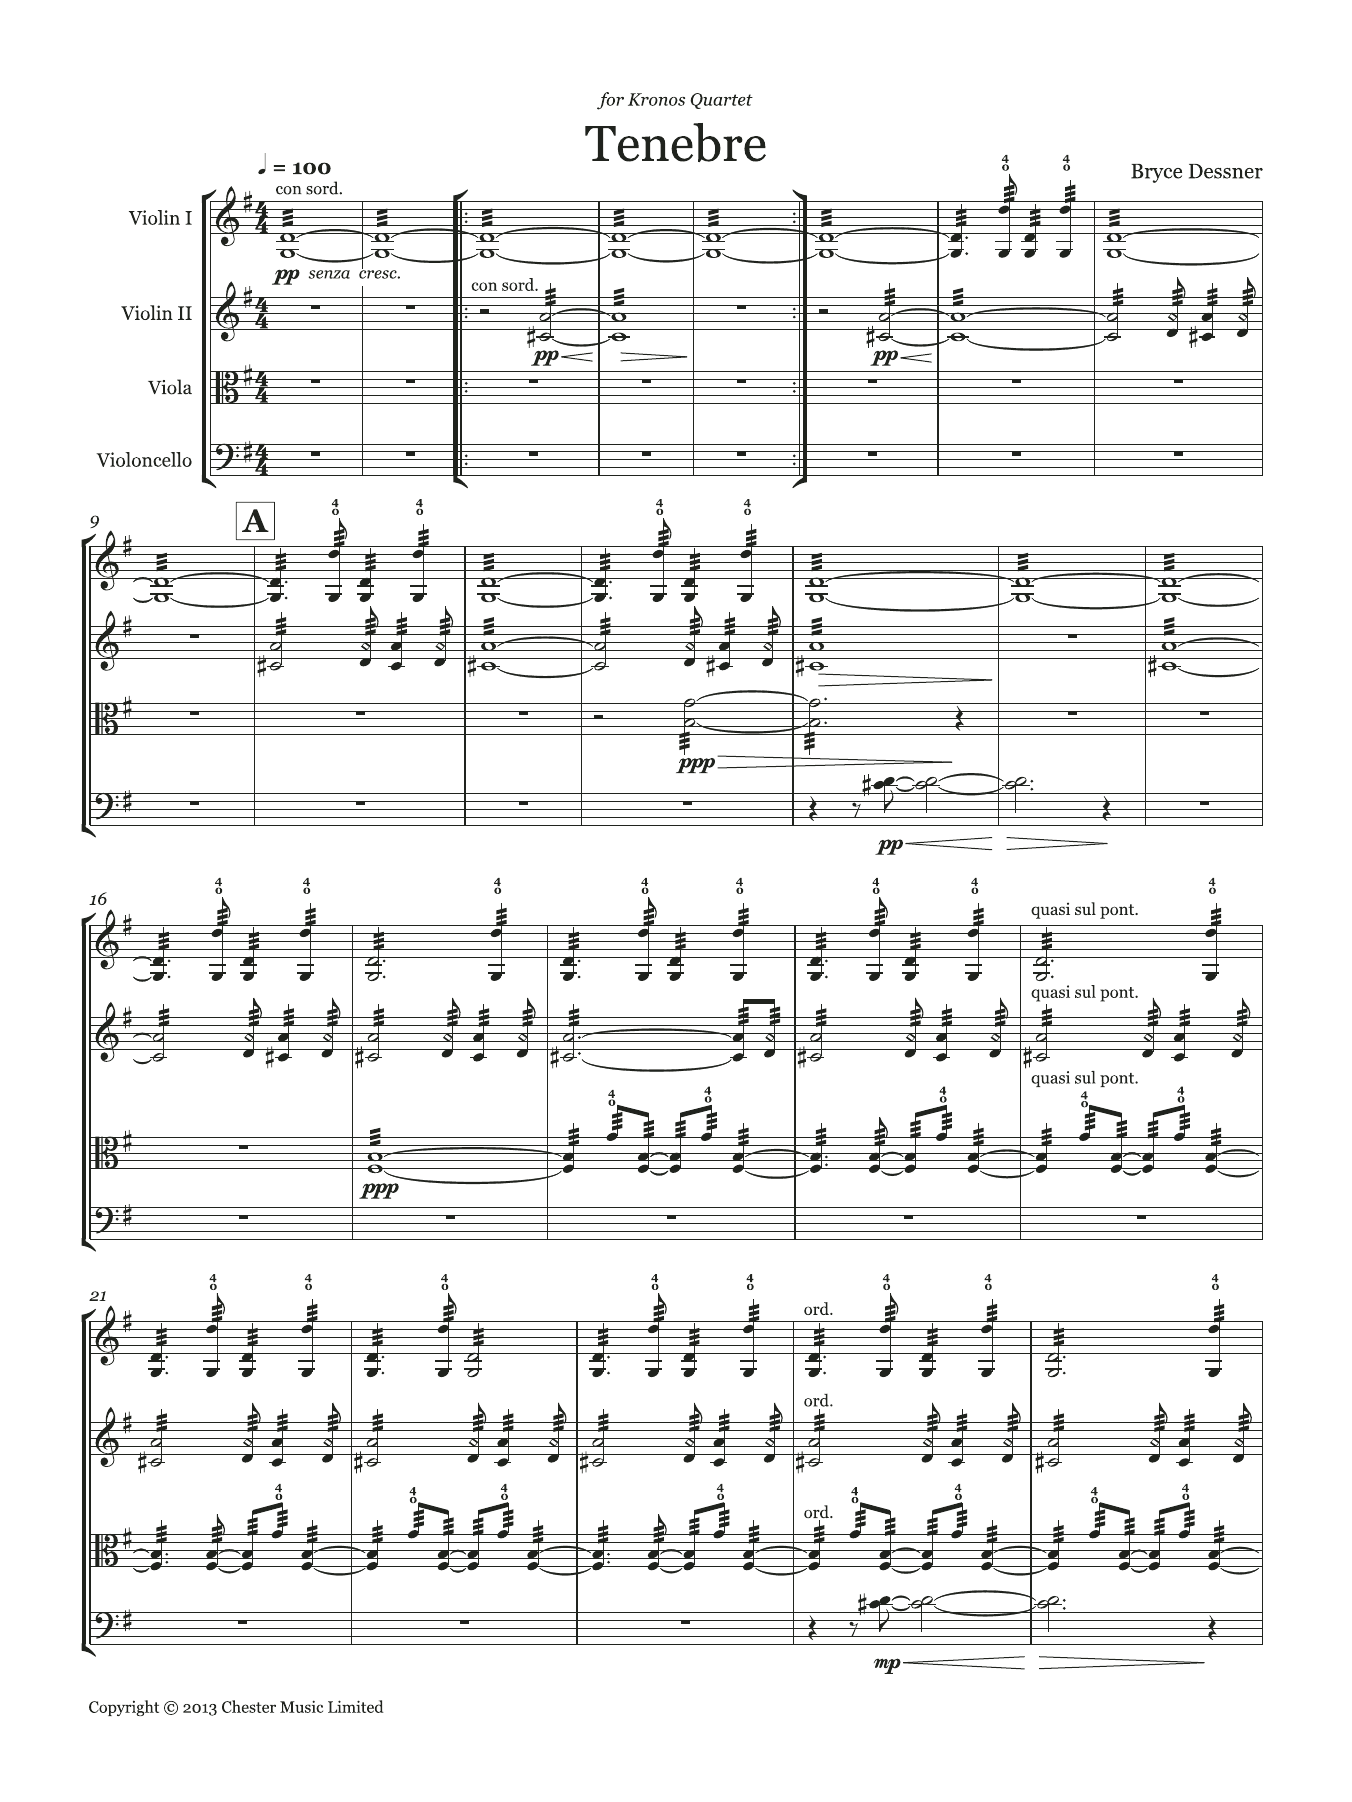 Bryce Dessner - Tenebre (String quartet score and parts)